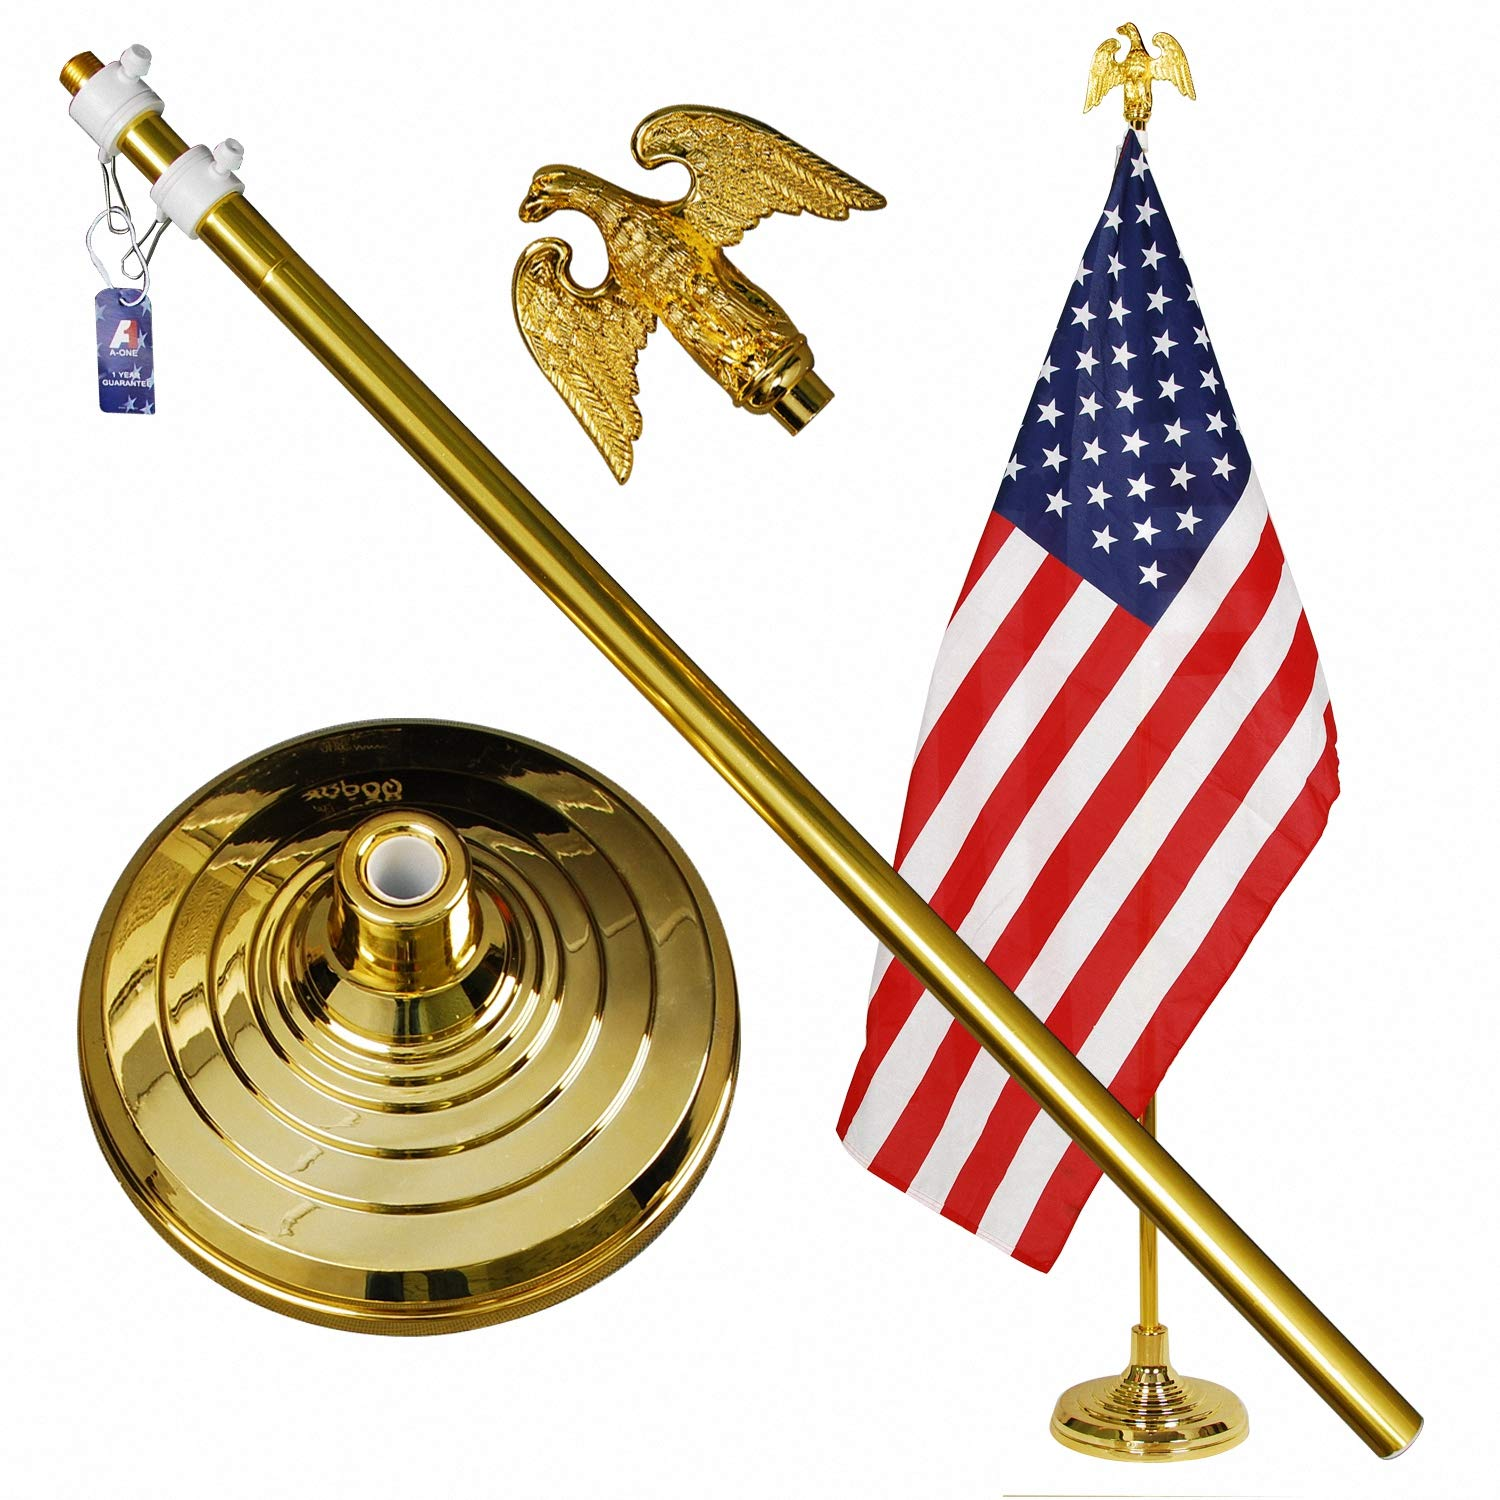 A-ONE 8FT Telescopic Indoor Flagpole Kit, Heavy Duty US Telescoping Aluminum Flag Pole with Base Stand and Gold Eagle Topper Ornament, Golden